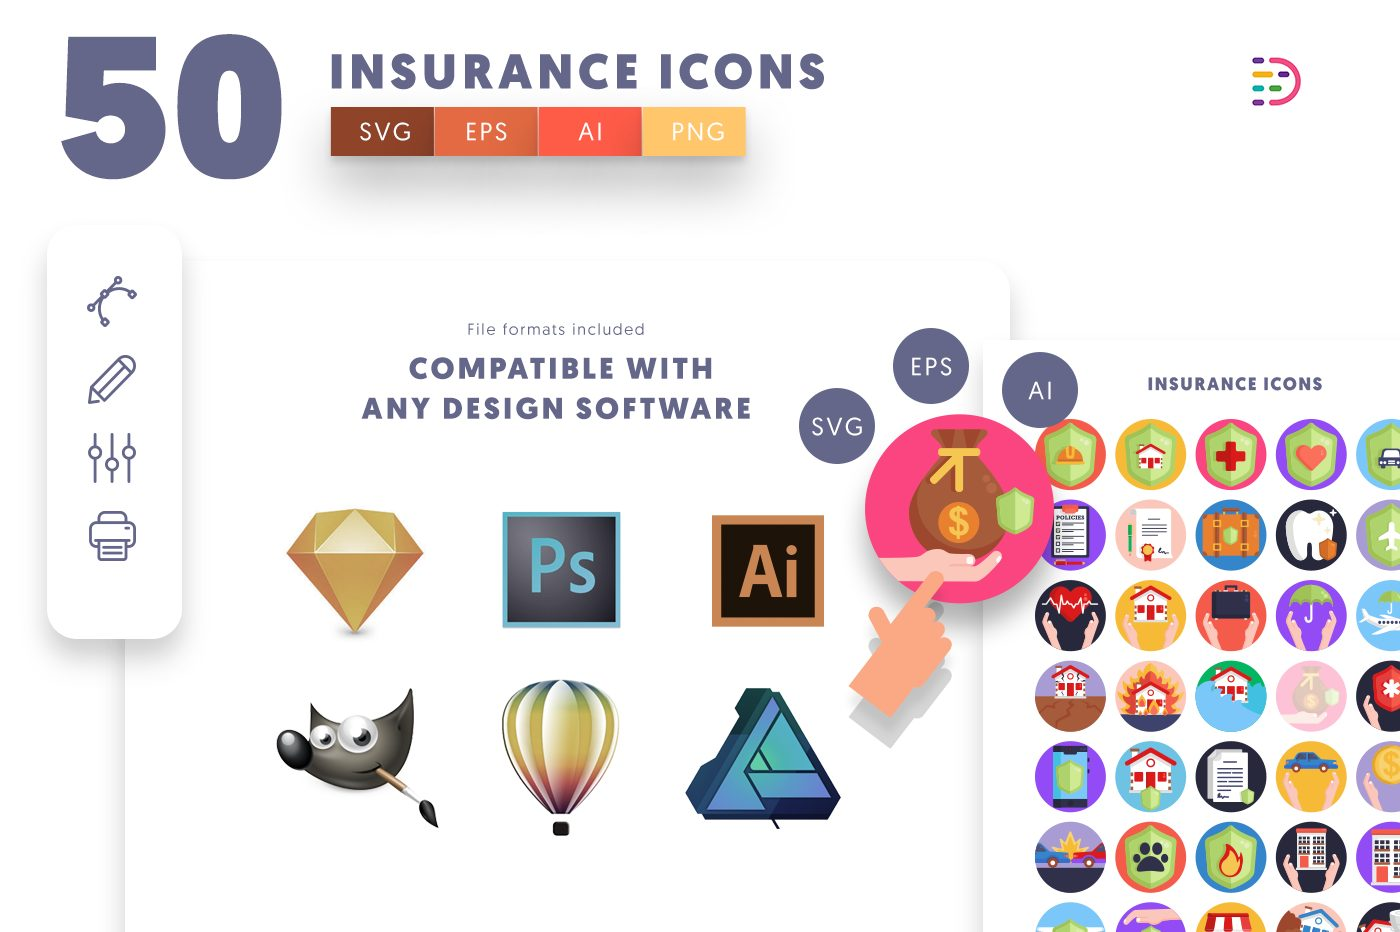 full vector 50 Insurance Icons EPS, SVG, PNG